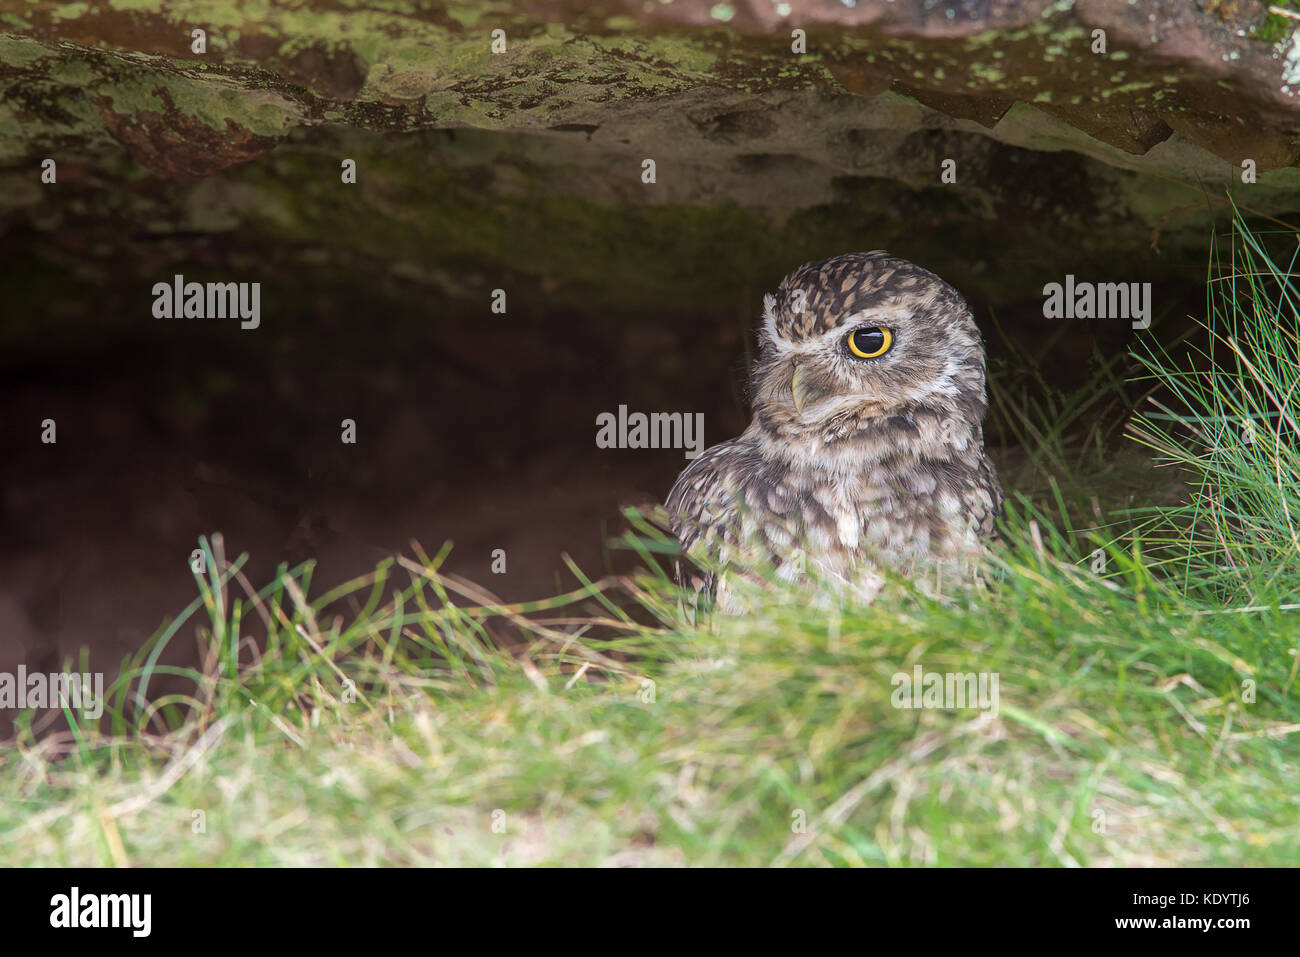 A very alert looking burrowing owl hiding under a rock and looking to the left in a natural setting - Stock Image